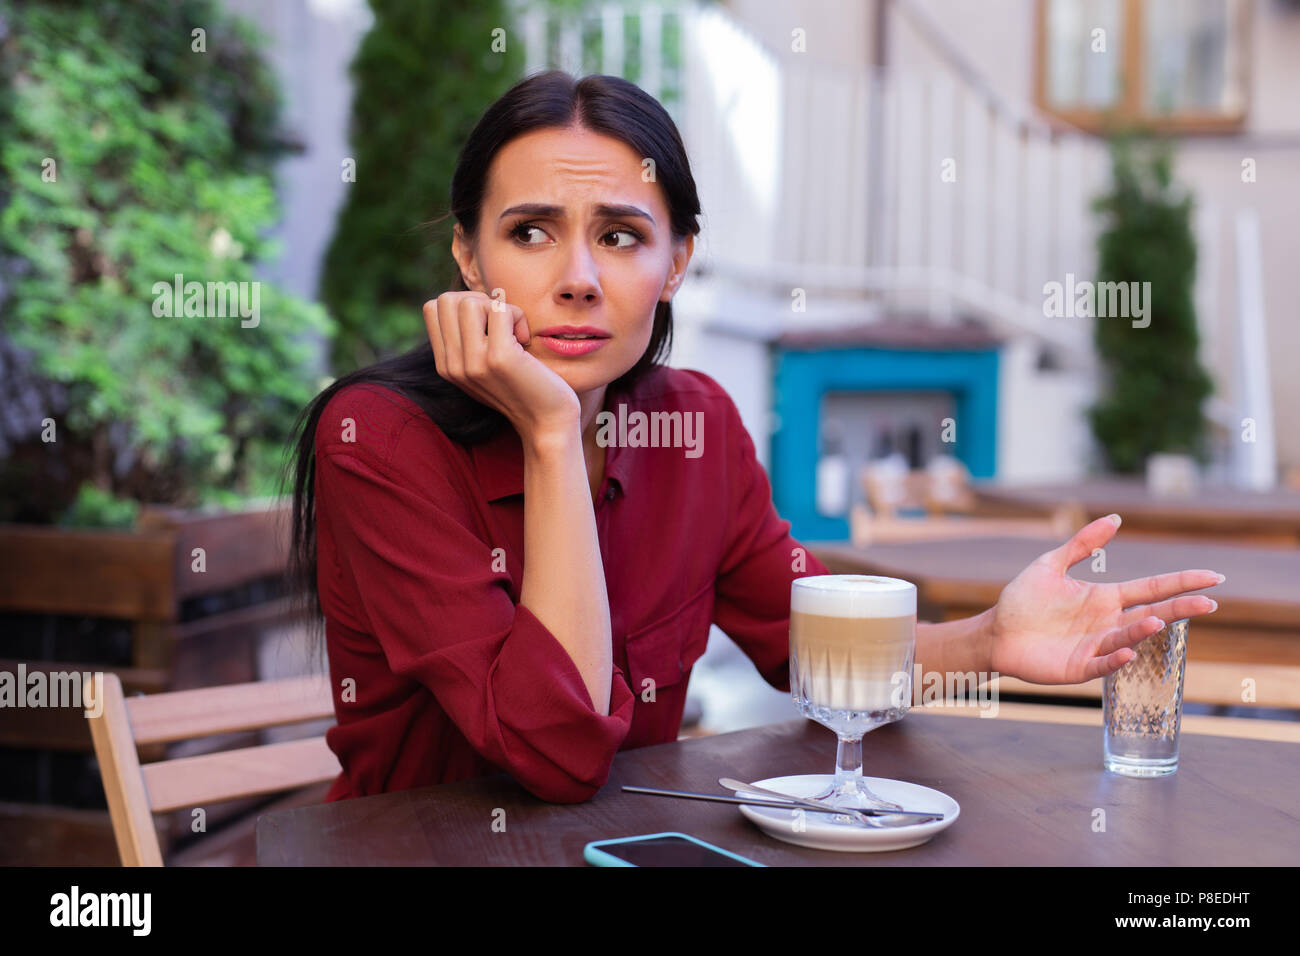 Businesswoman feeling emotional while having dispute with partner - Stock Image